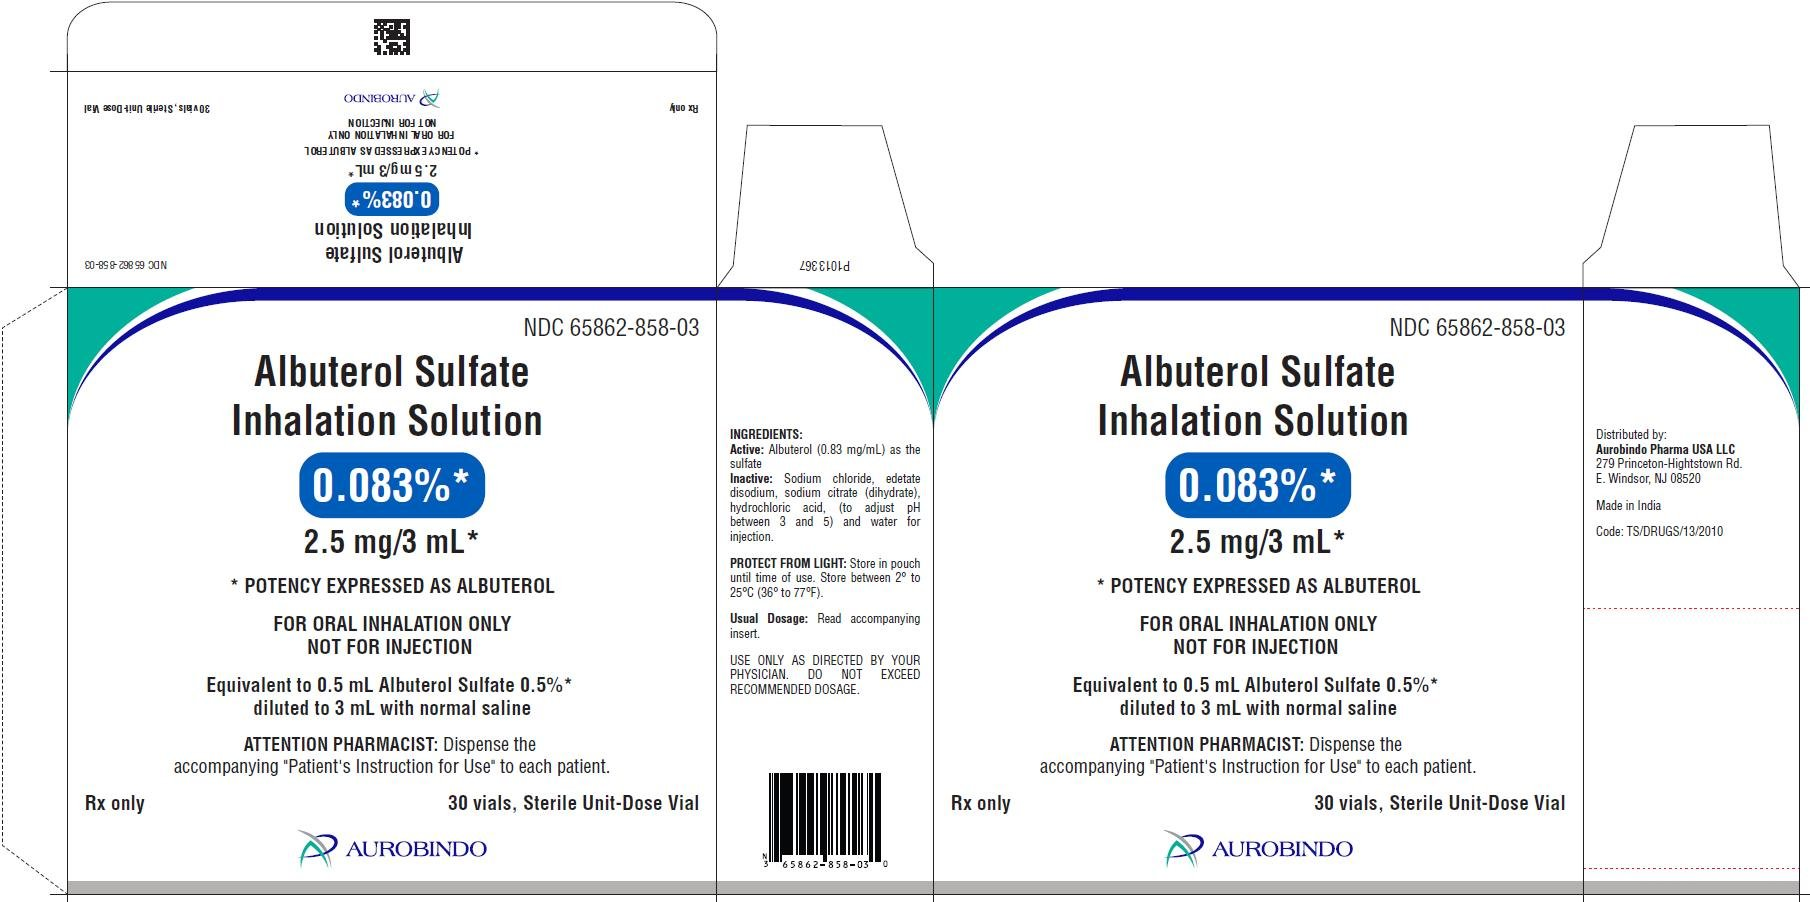 Albuterol Inhalation Solution Fda Prescribing Information Side